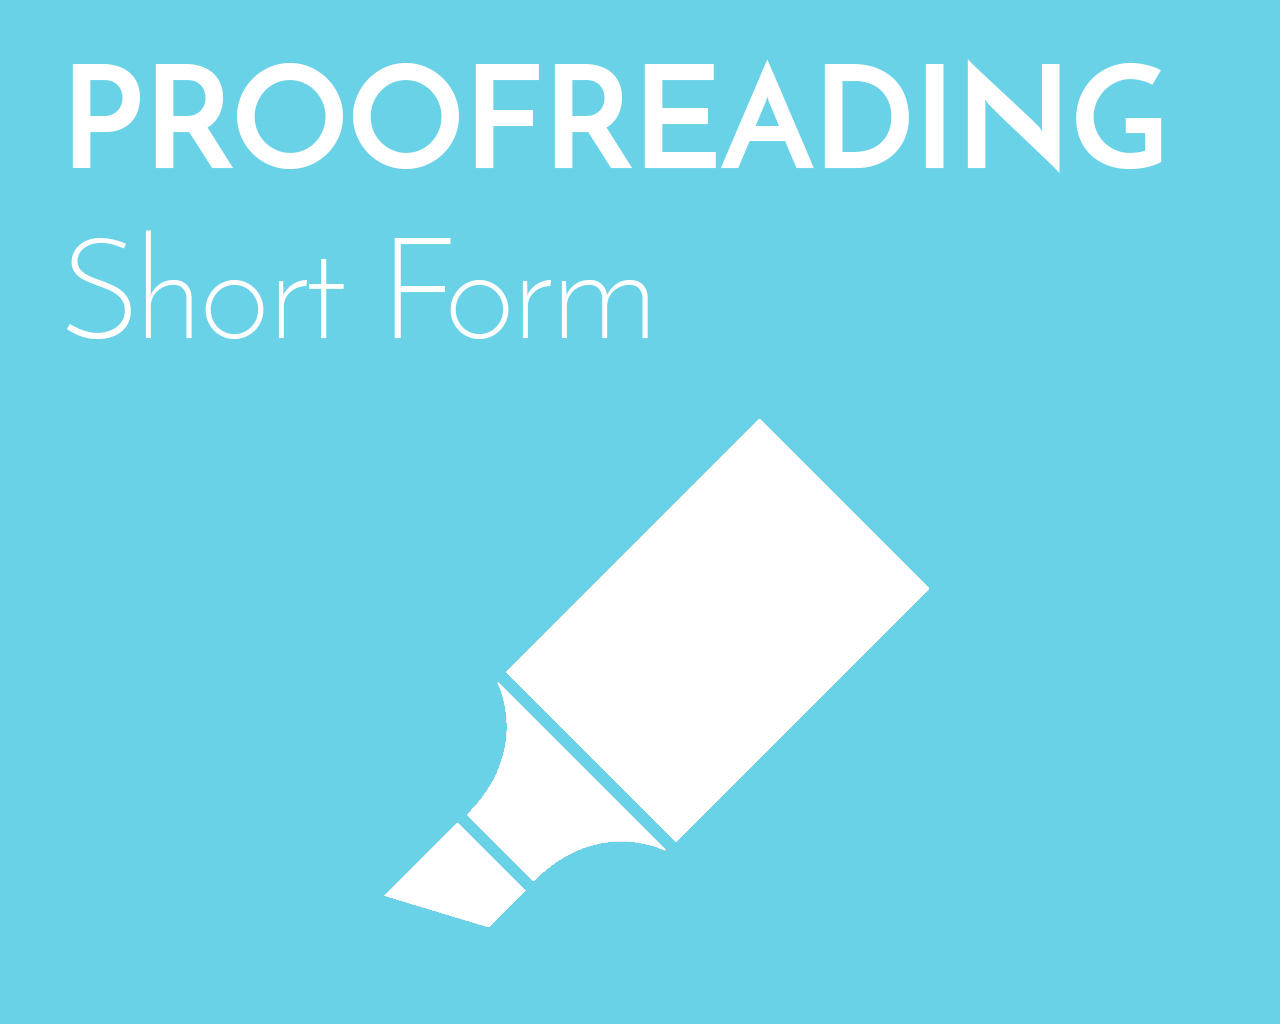 Professional Proofreading (Short Form) by emilyshore - 73448